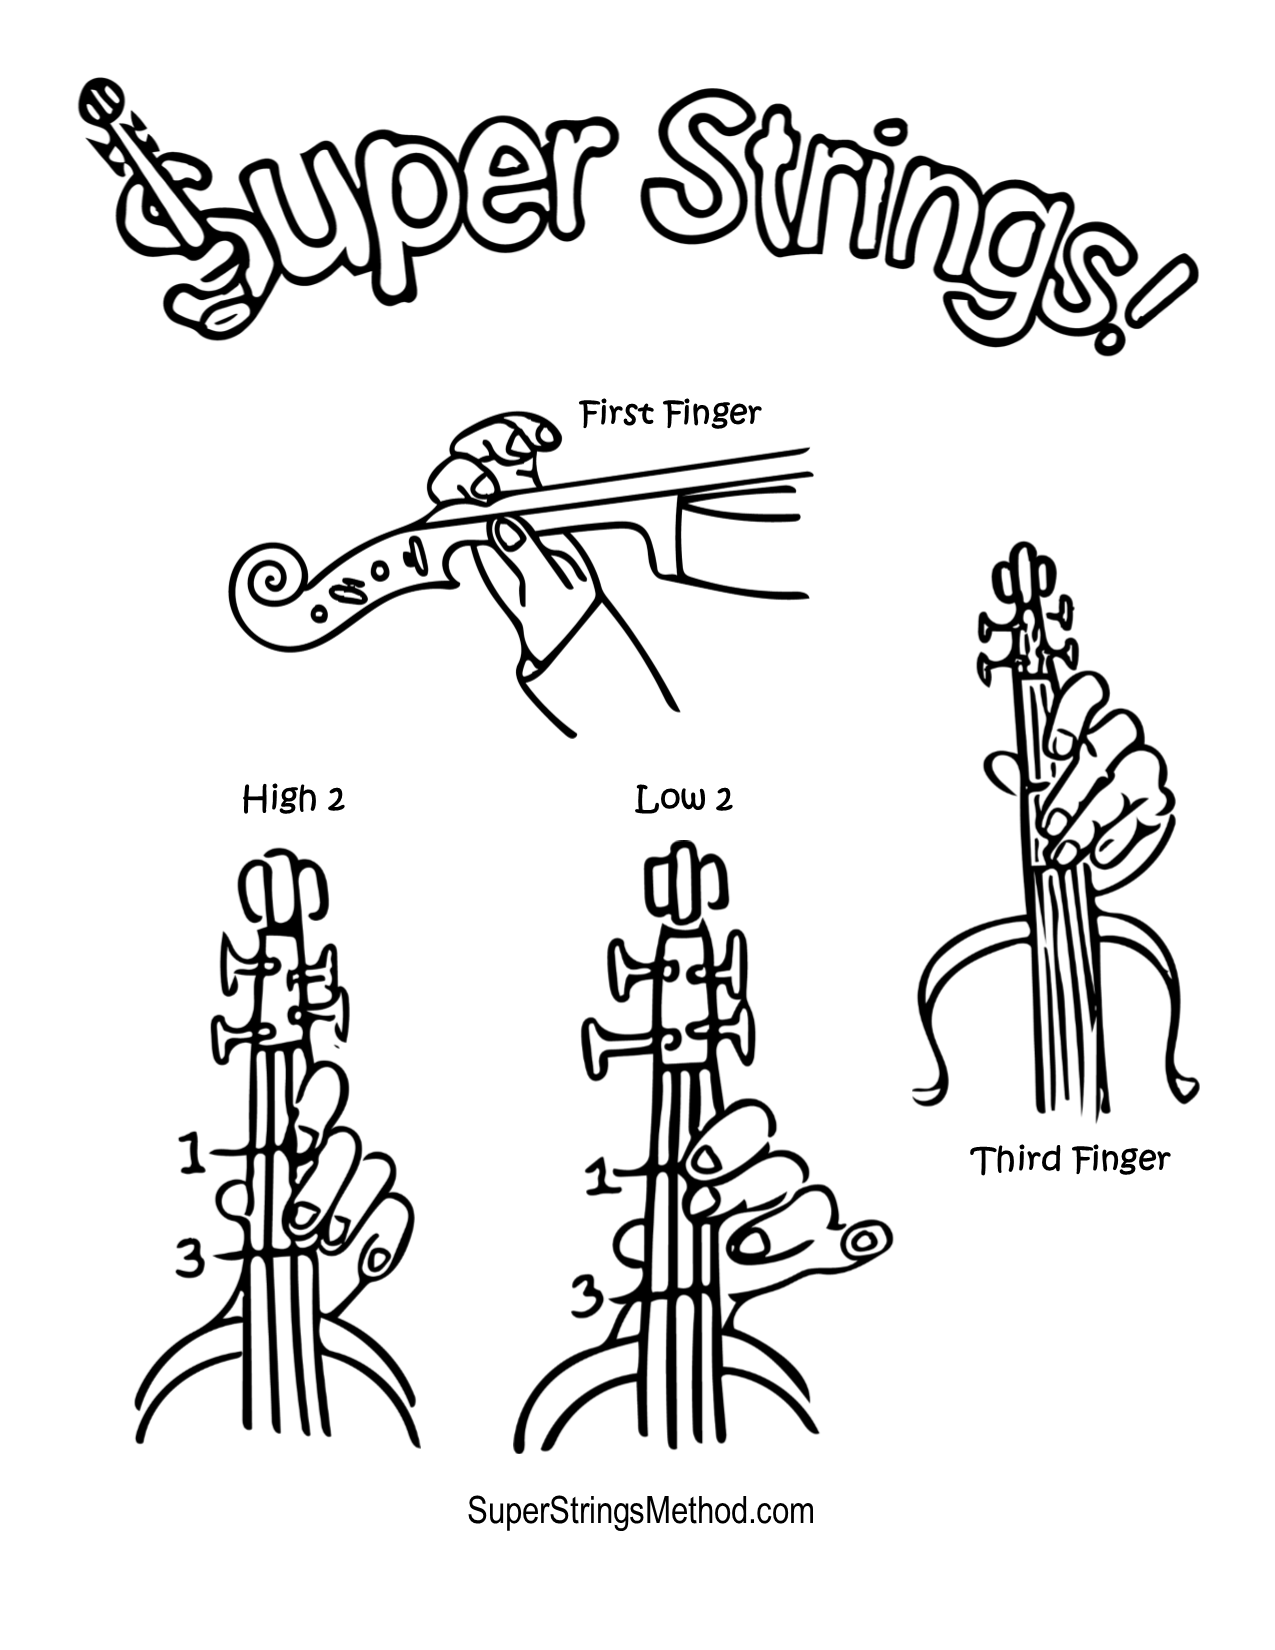 FREE violin book coloring pages.